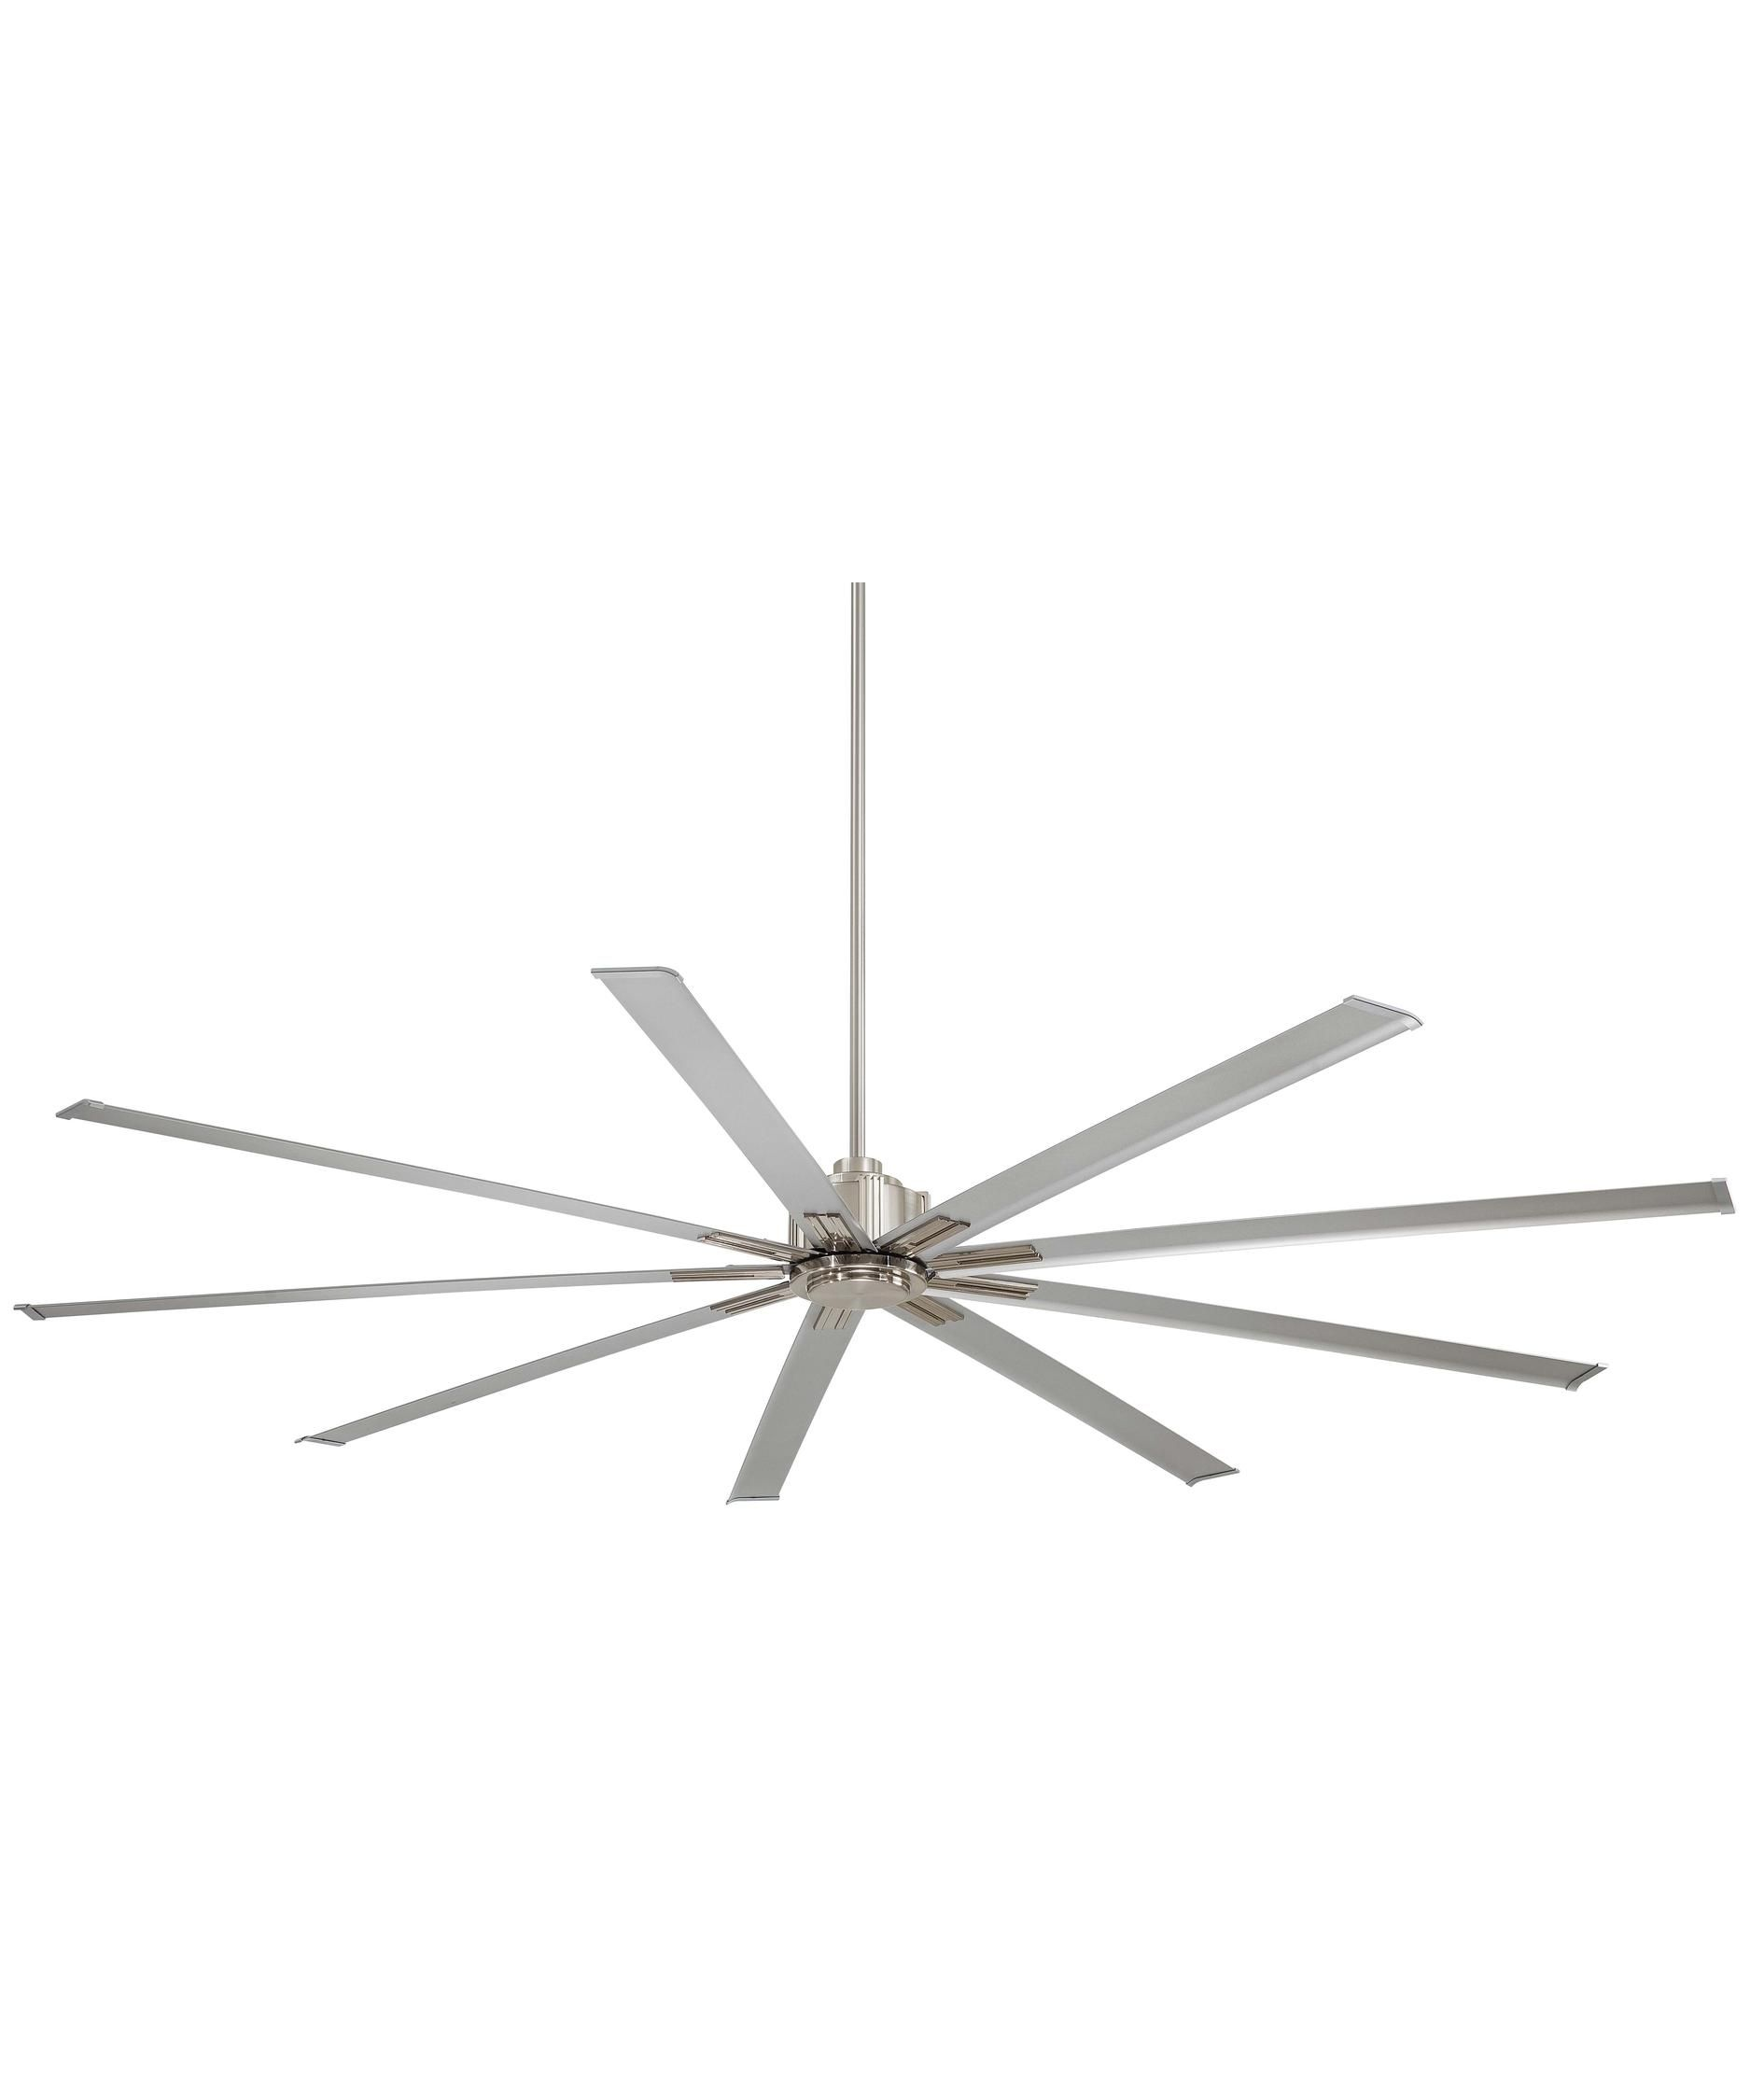 Xtreme 72 Inch Ceiling Fan By Minka Aire Large Ceiling Fans